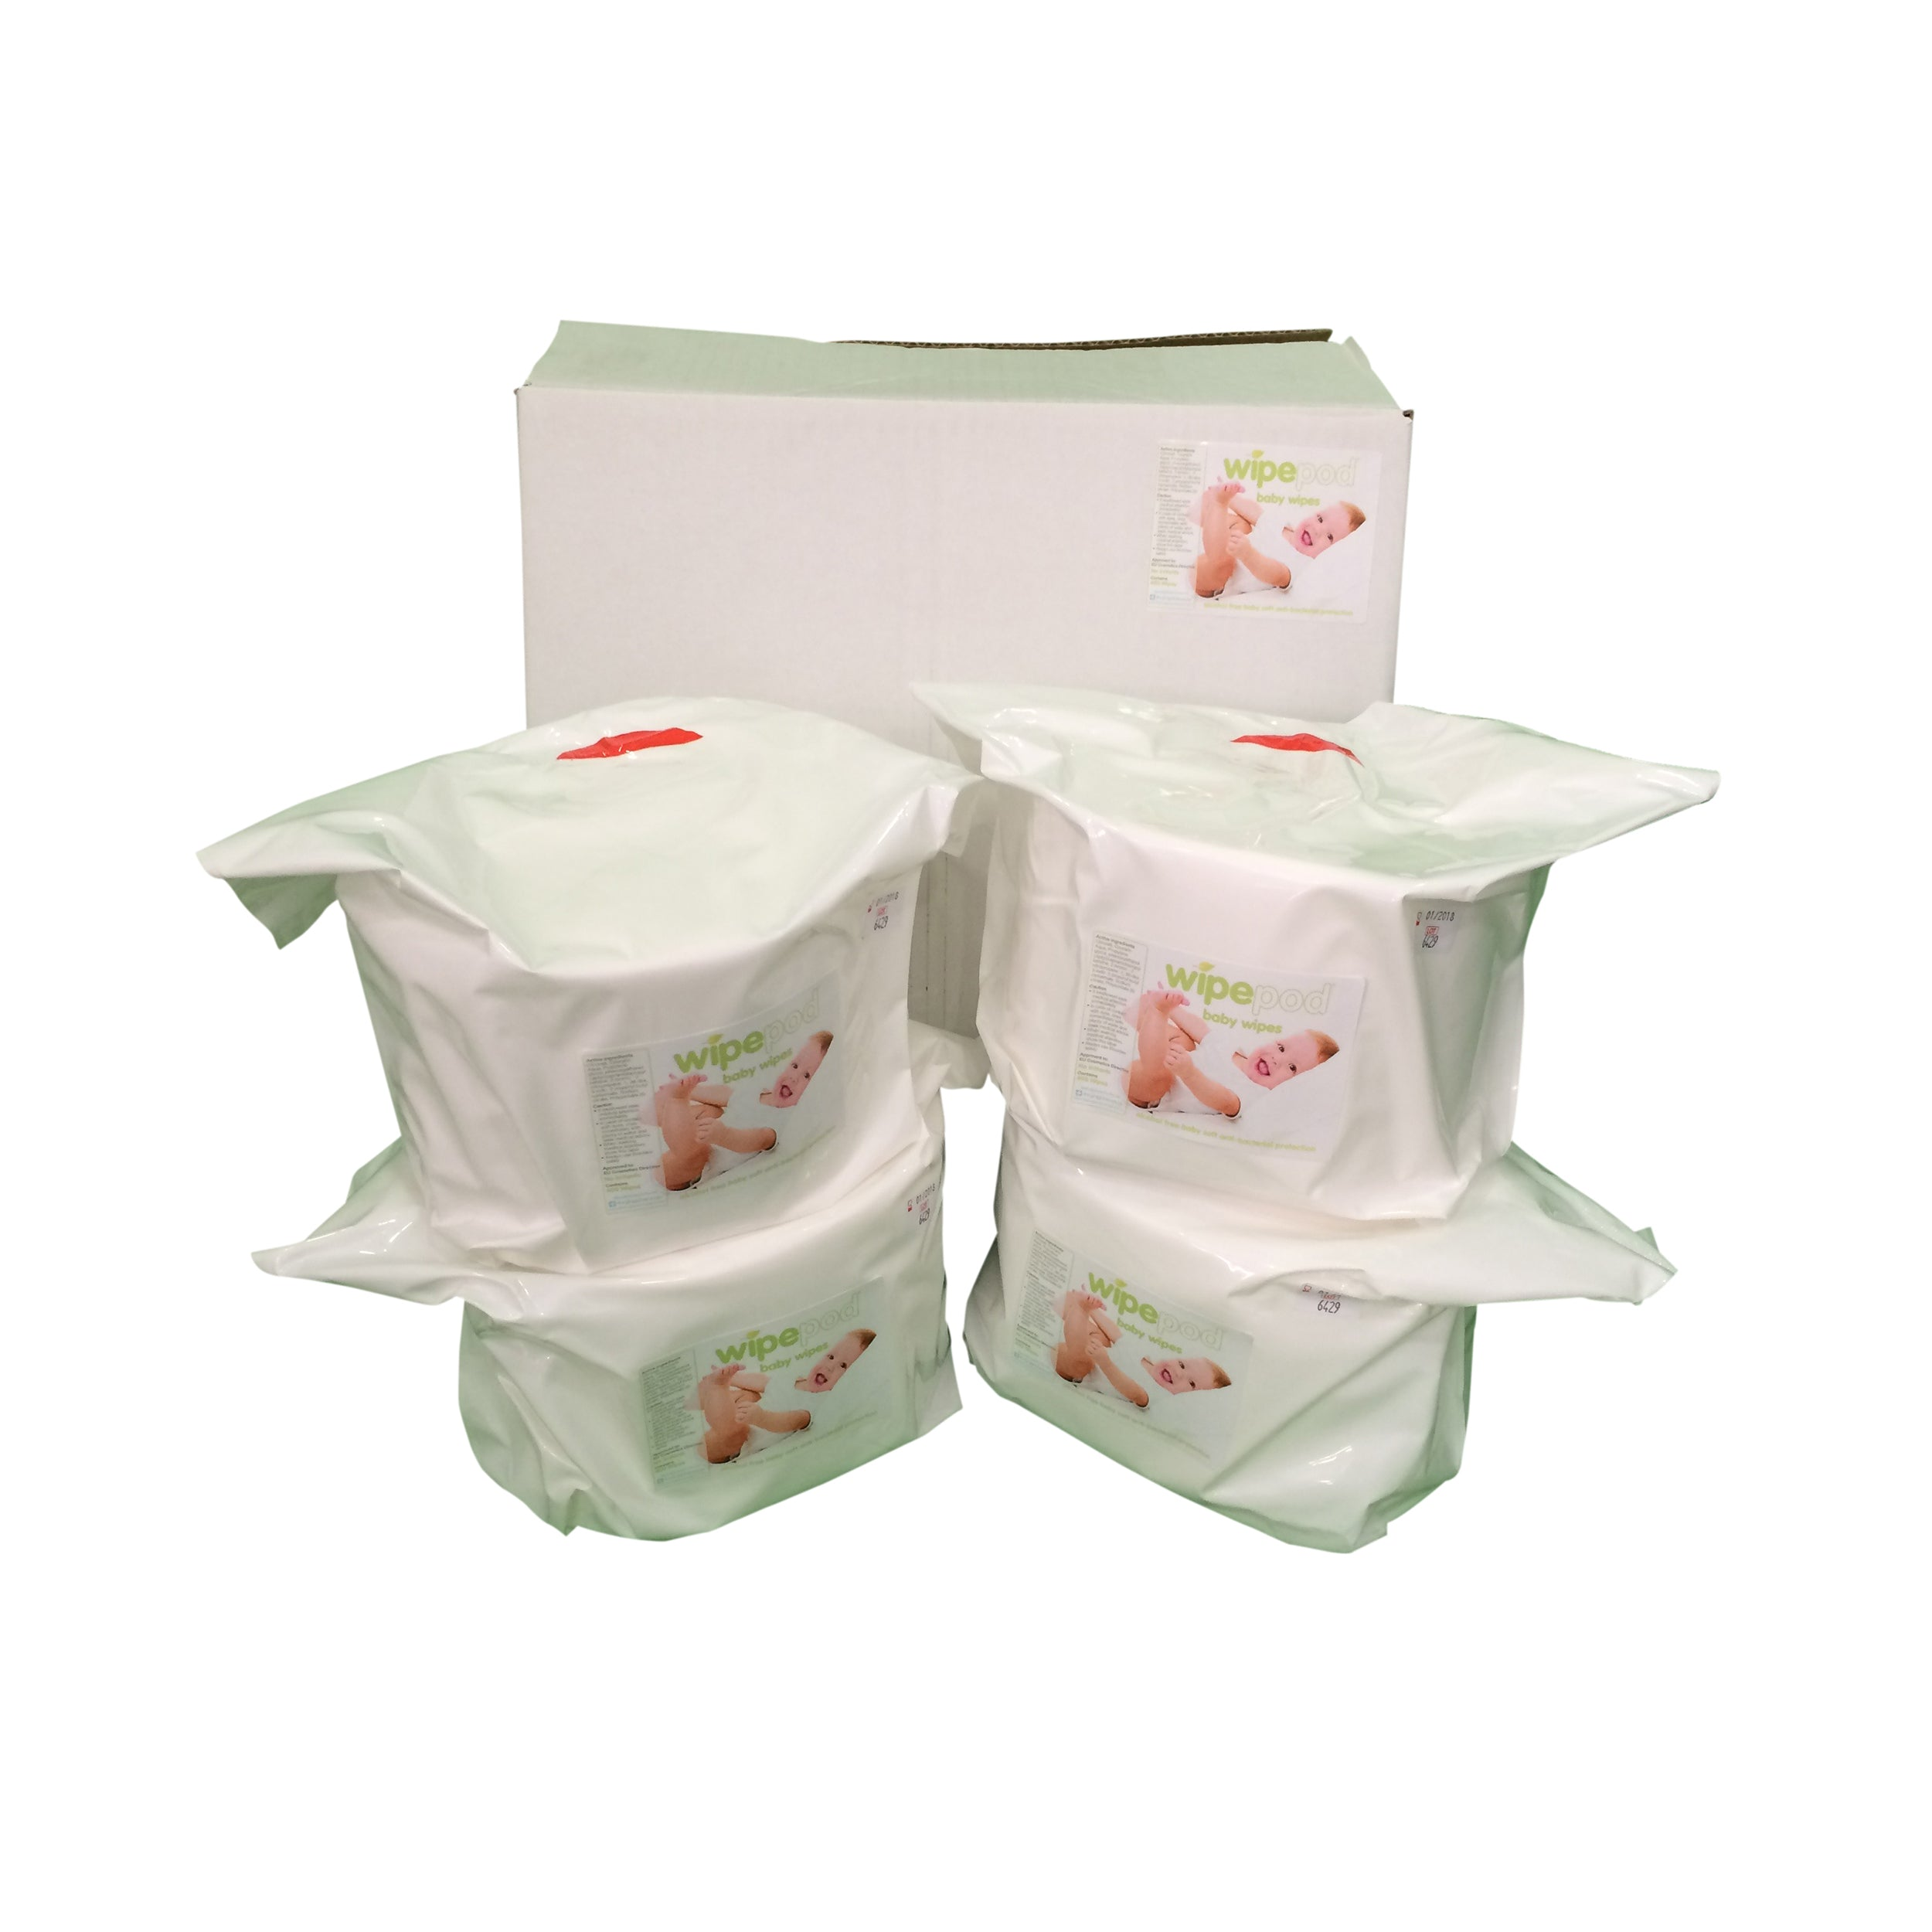 Wet Wipes: 400 Sheet Baby Wipes 140x235mm ( 4 rolls per box )